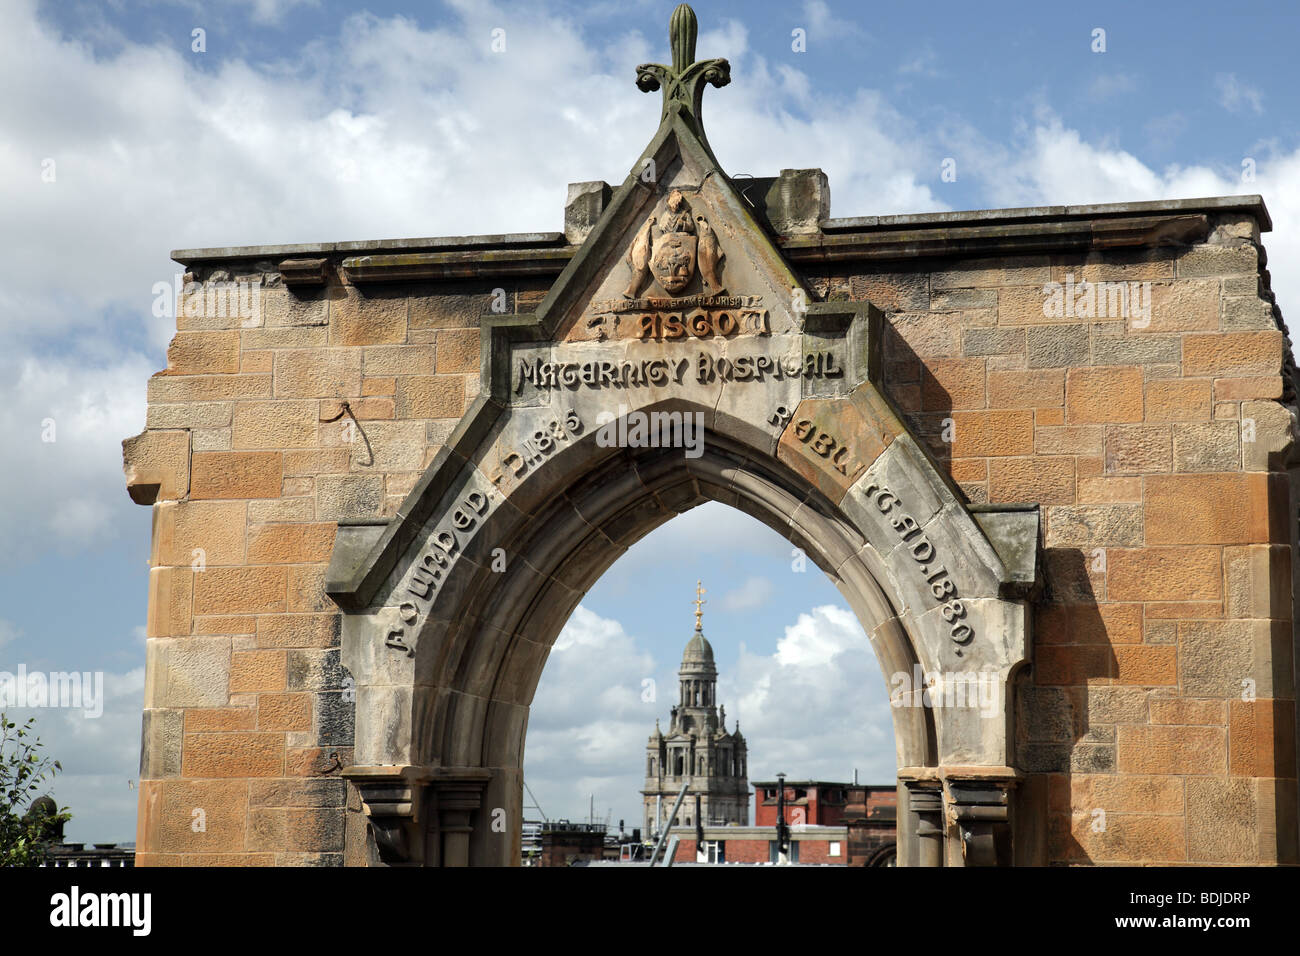 Dome of the City Chambers viewed through the Rottenrow Arch in Glasgow, Scotland, UK Stock Photo